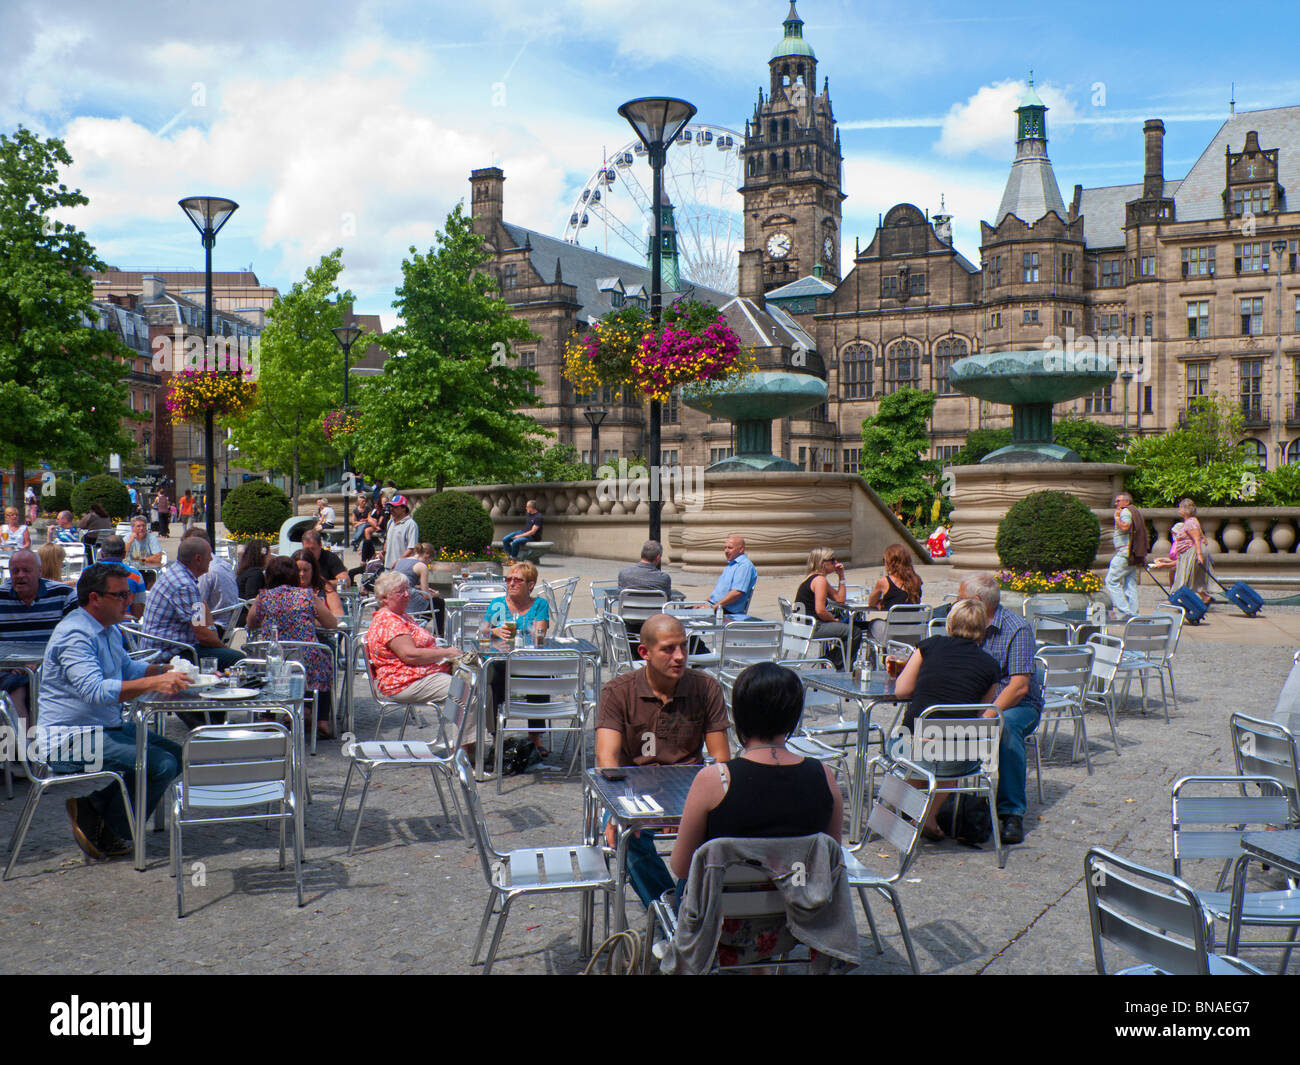 Sheffield Town Hall, Peace Gardens and Wheel with outdoor diners - Stock Image